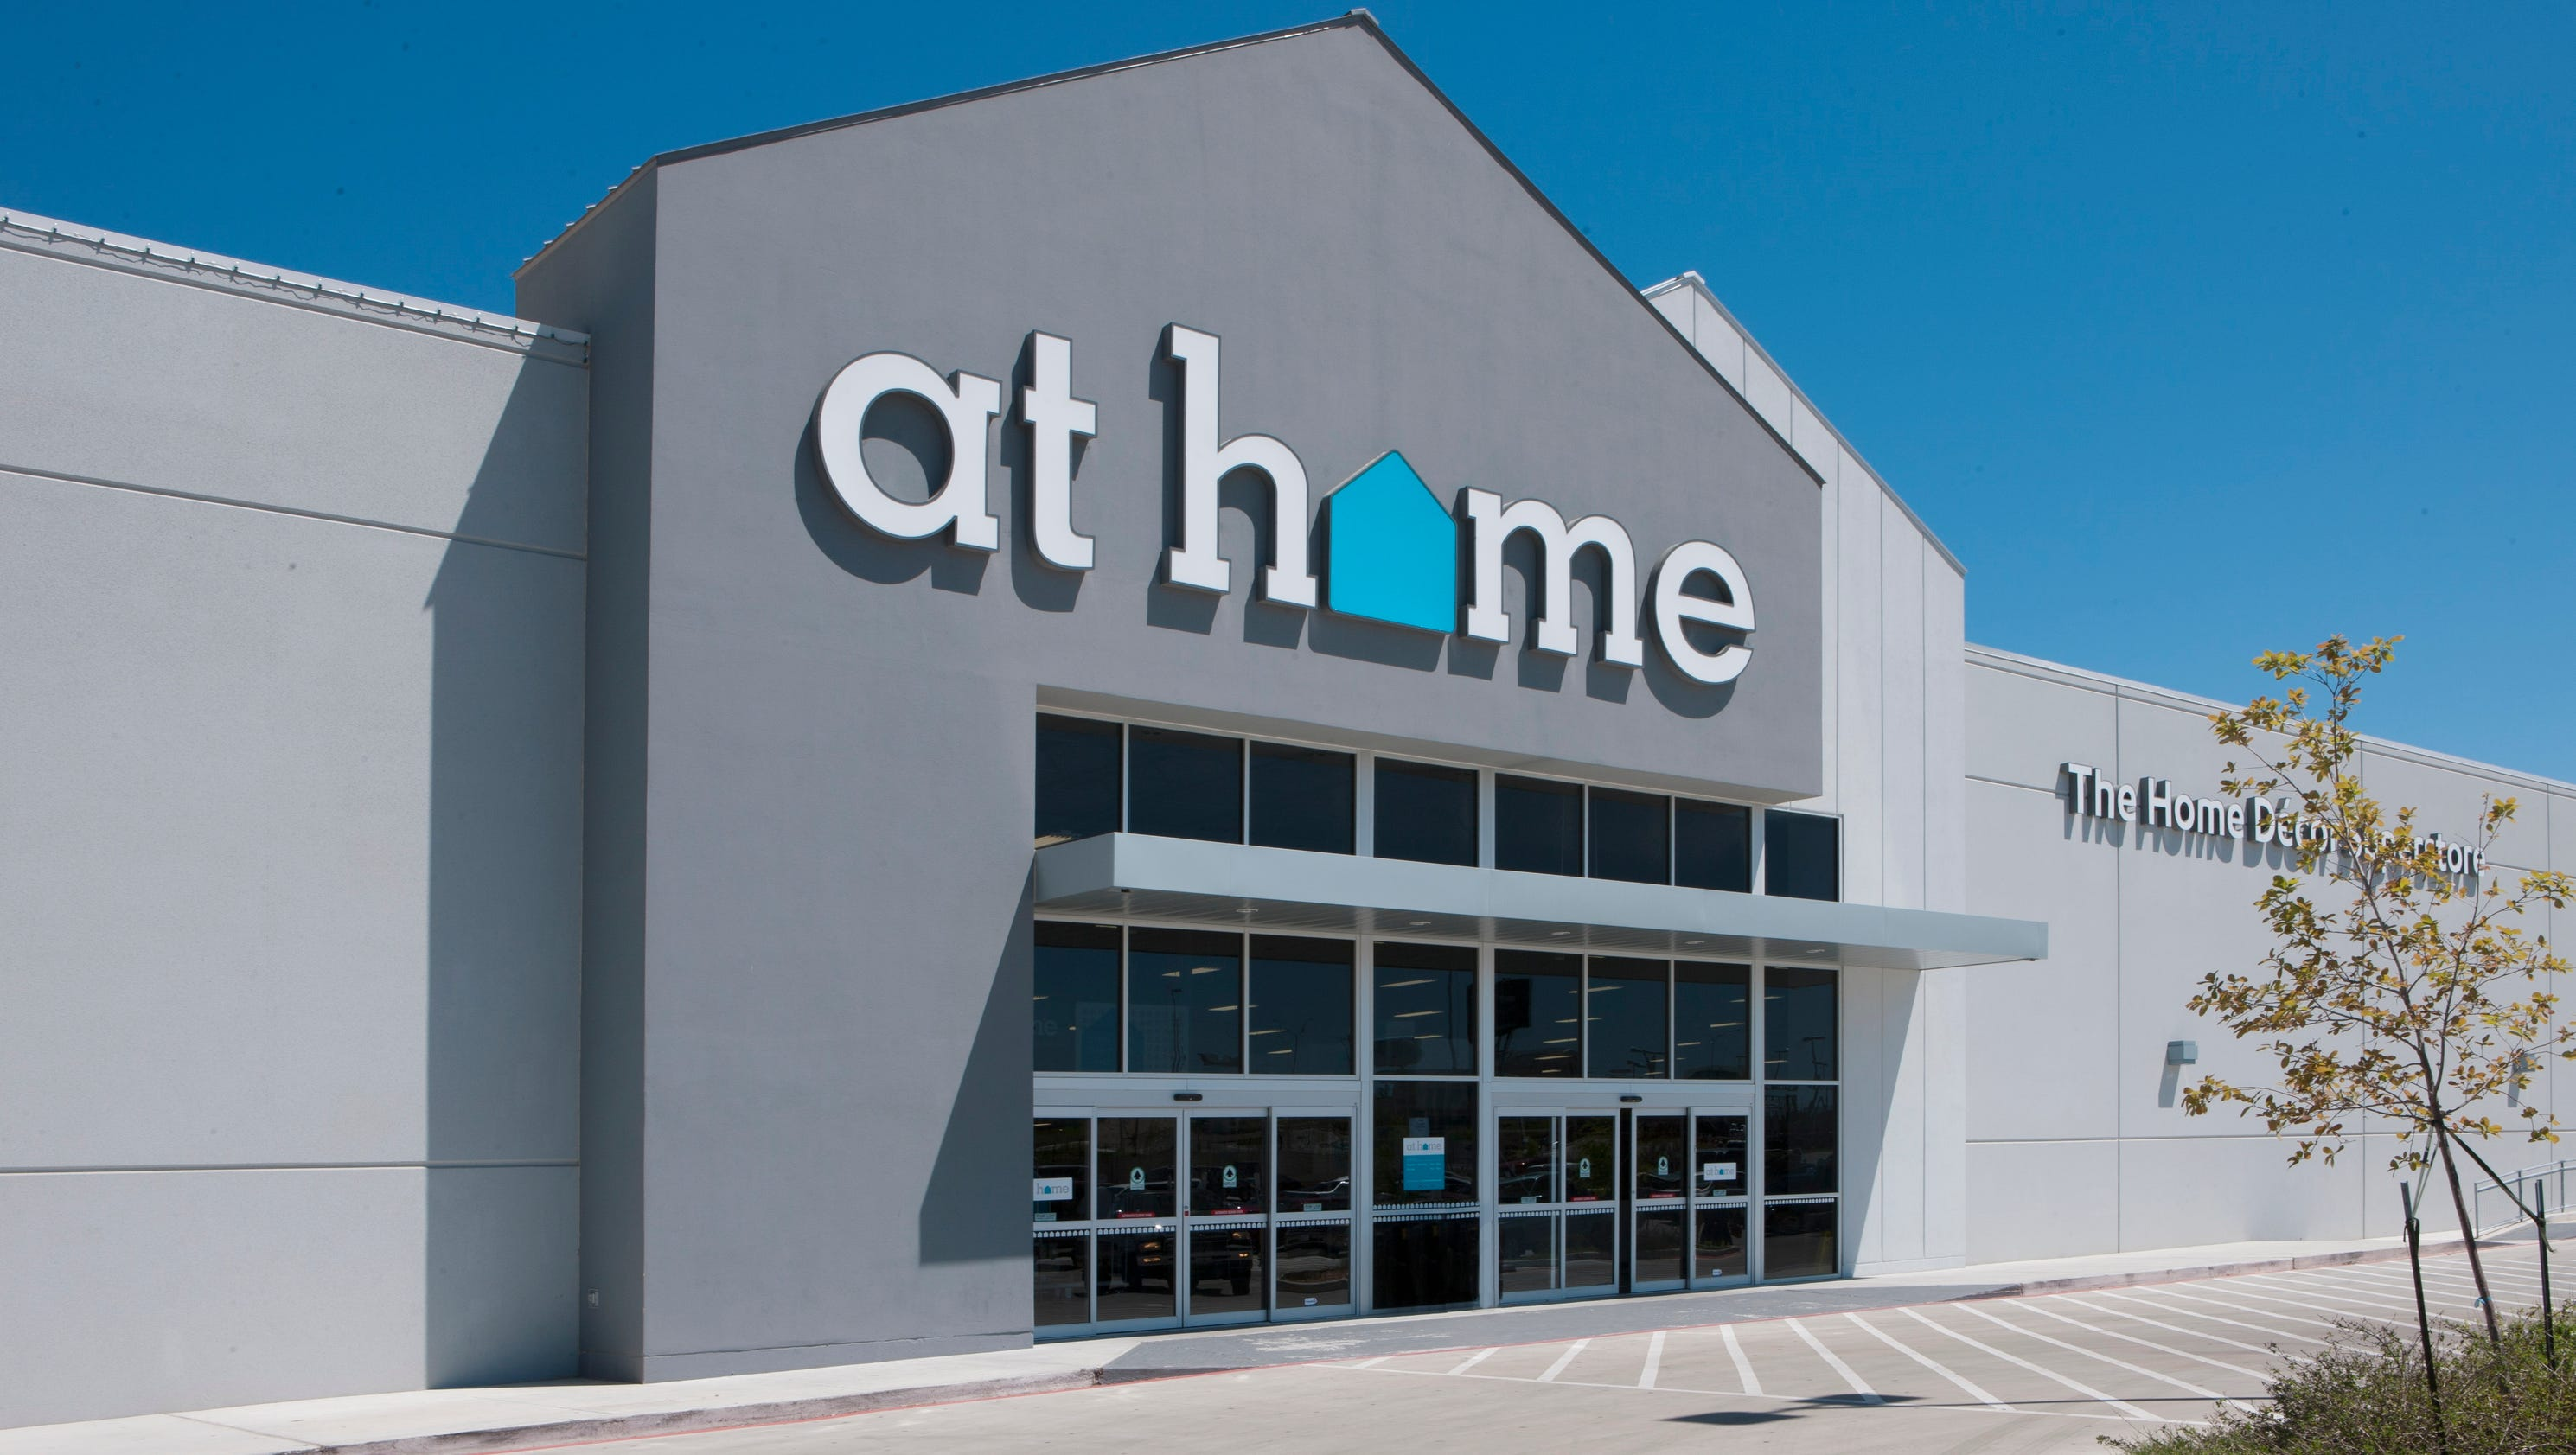 Former Sears to be e At Home store